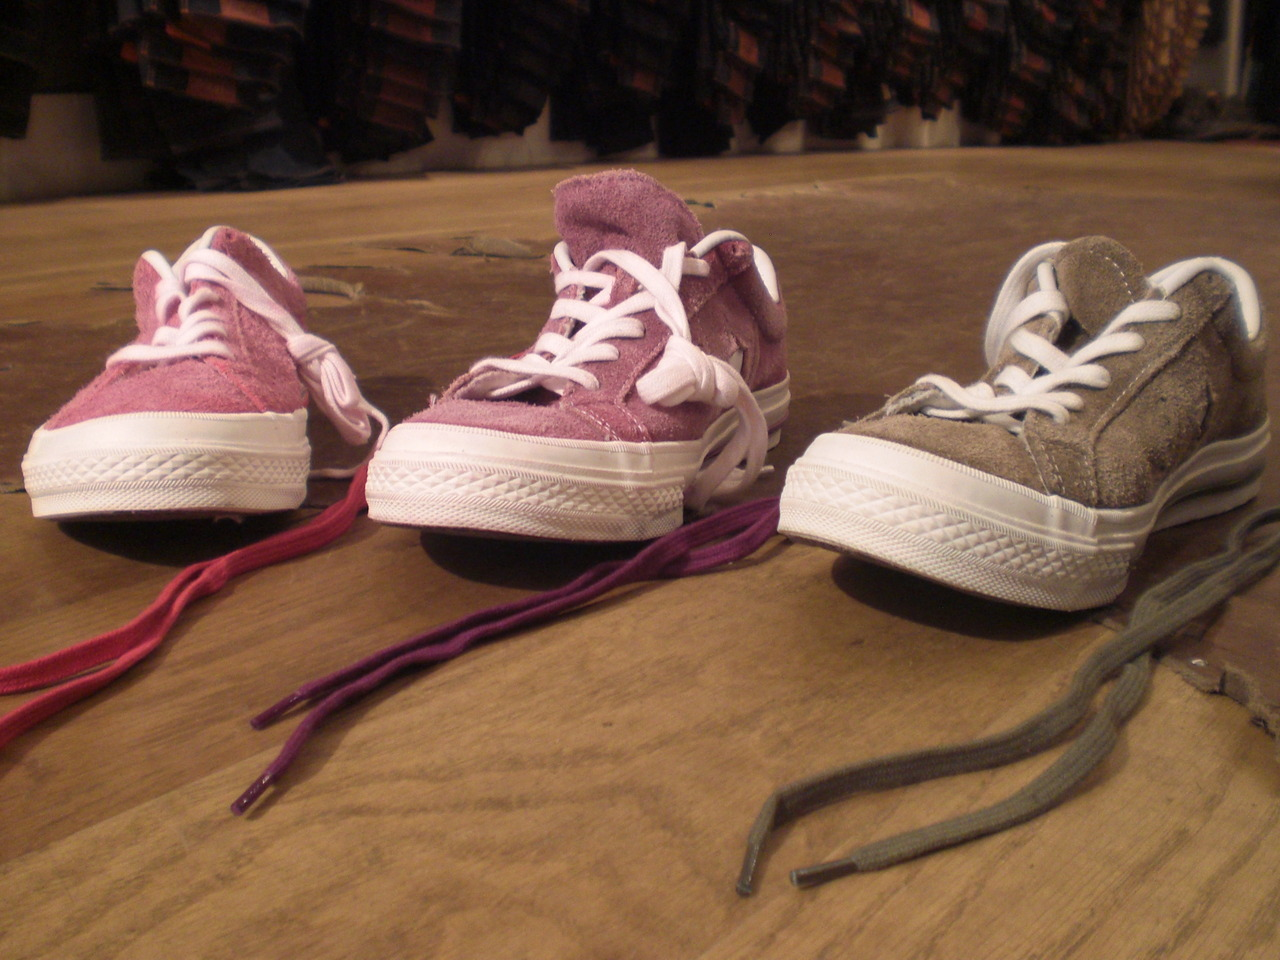 We now have in stock the latest colors of our collaboration with Converse on their One Star style: pink, purple, and olive green.  They've been washed by Alex at our 14th street store.   You know, the usual business.